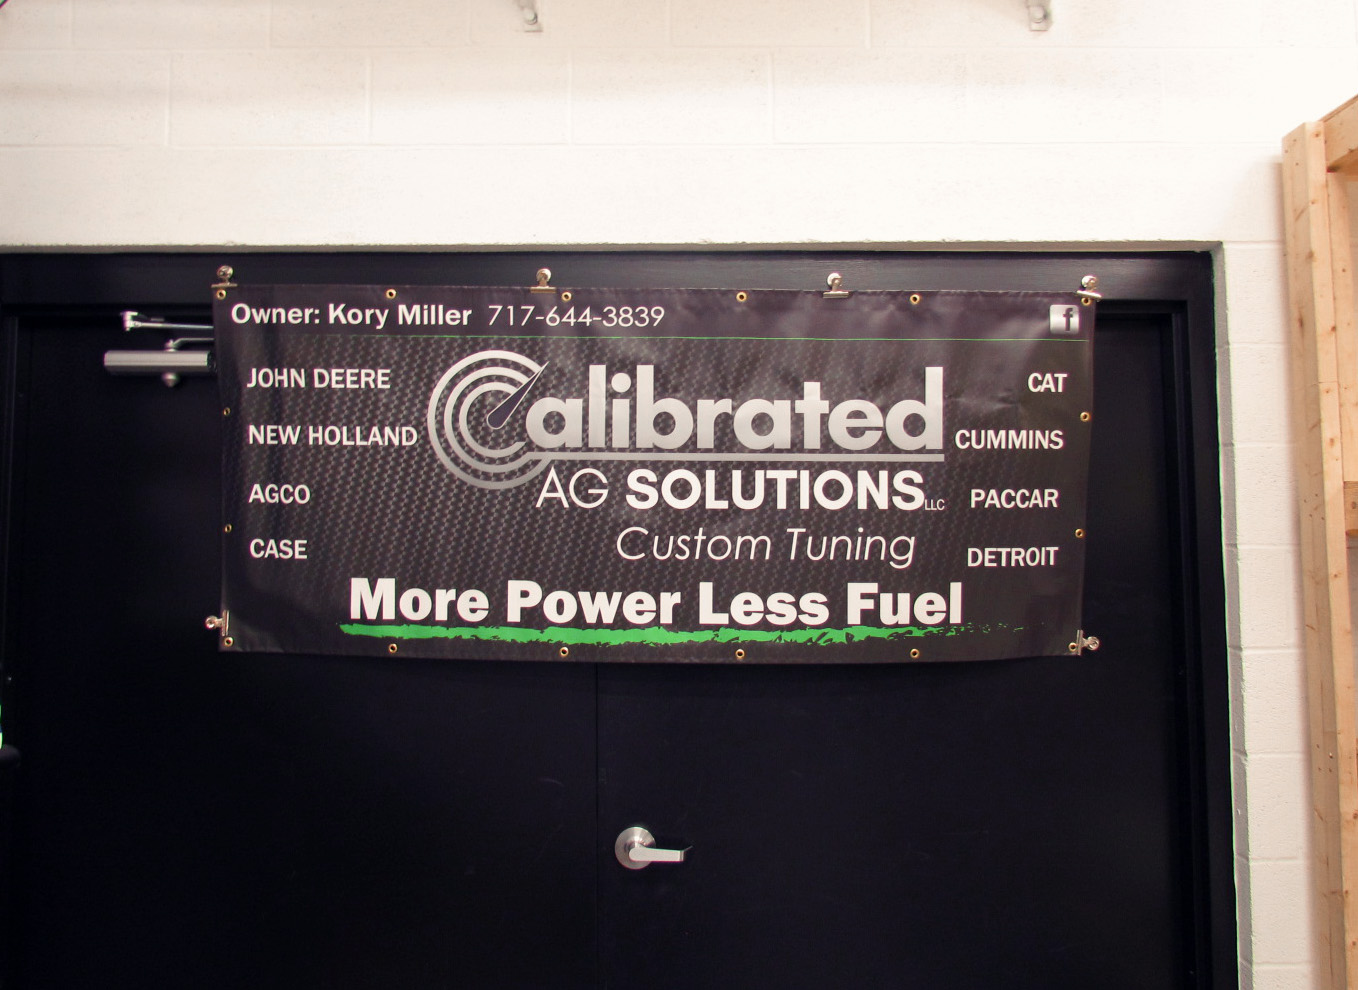 Calibrated Solutions